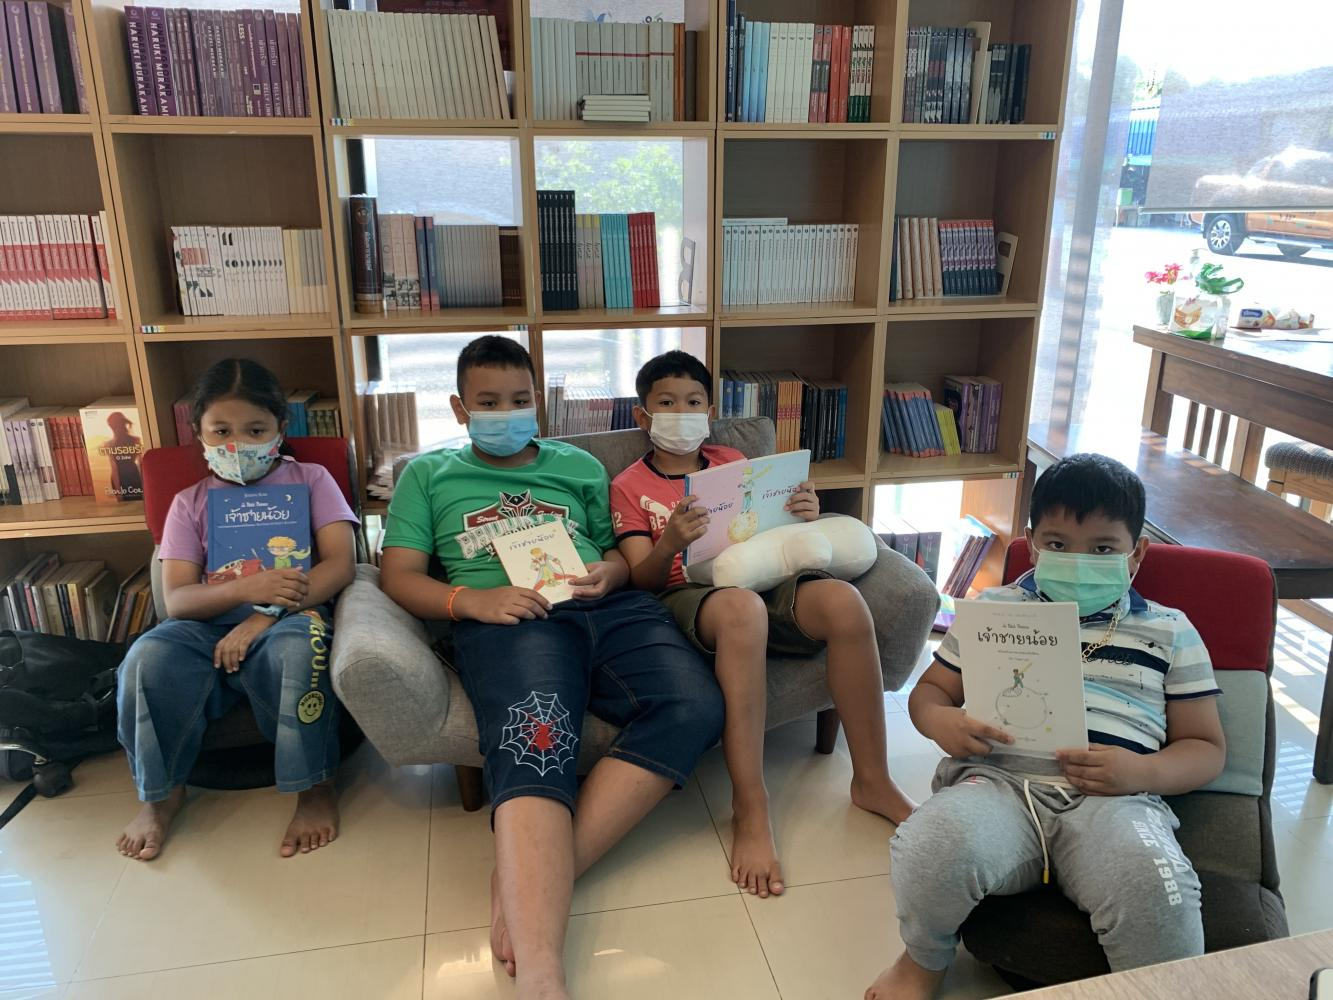 Promoting a culture of reading